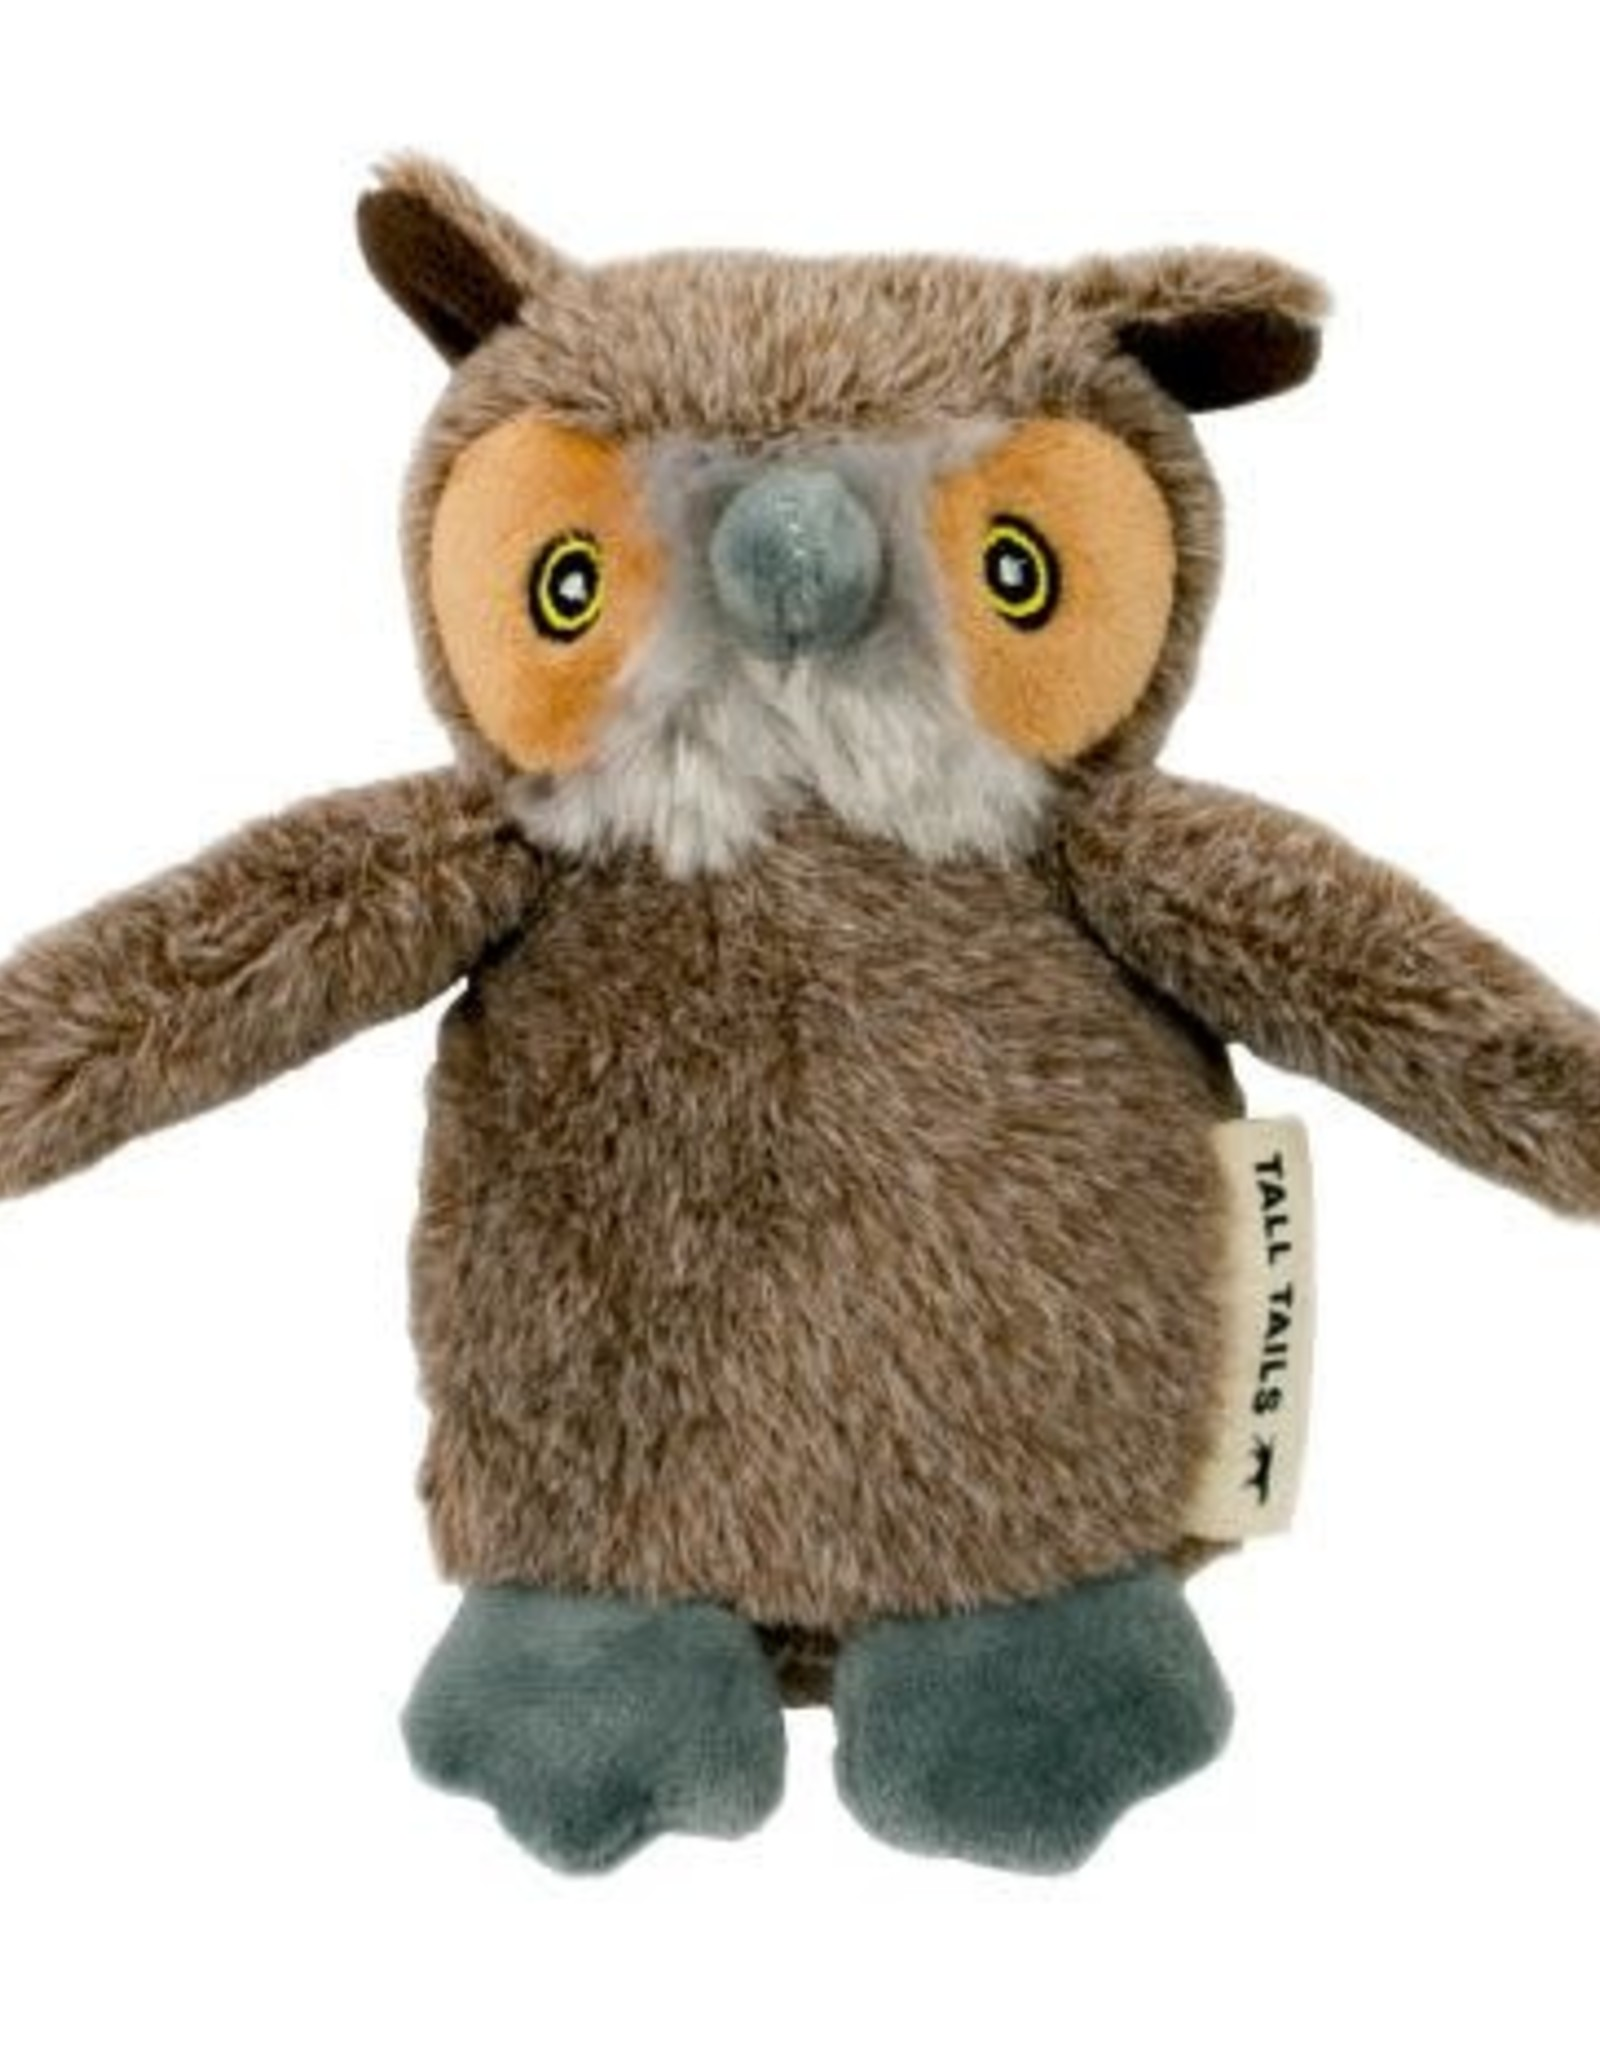 Tall Tails Tall Tails Plush Baby Owl with Squeaker